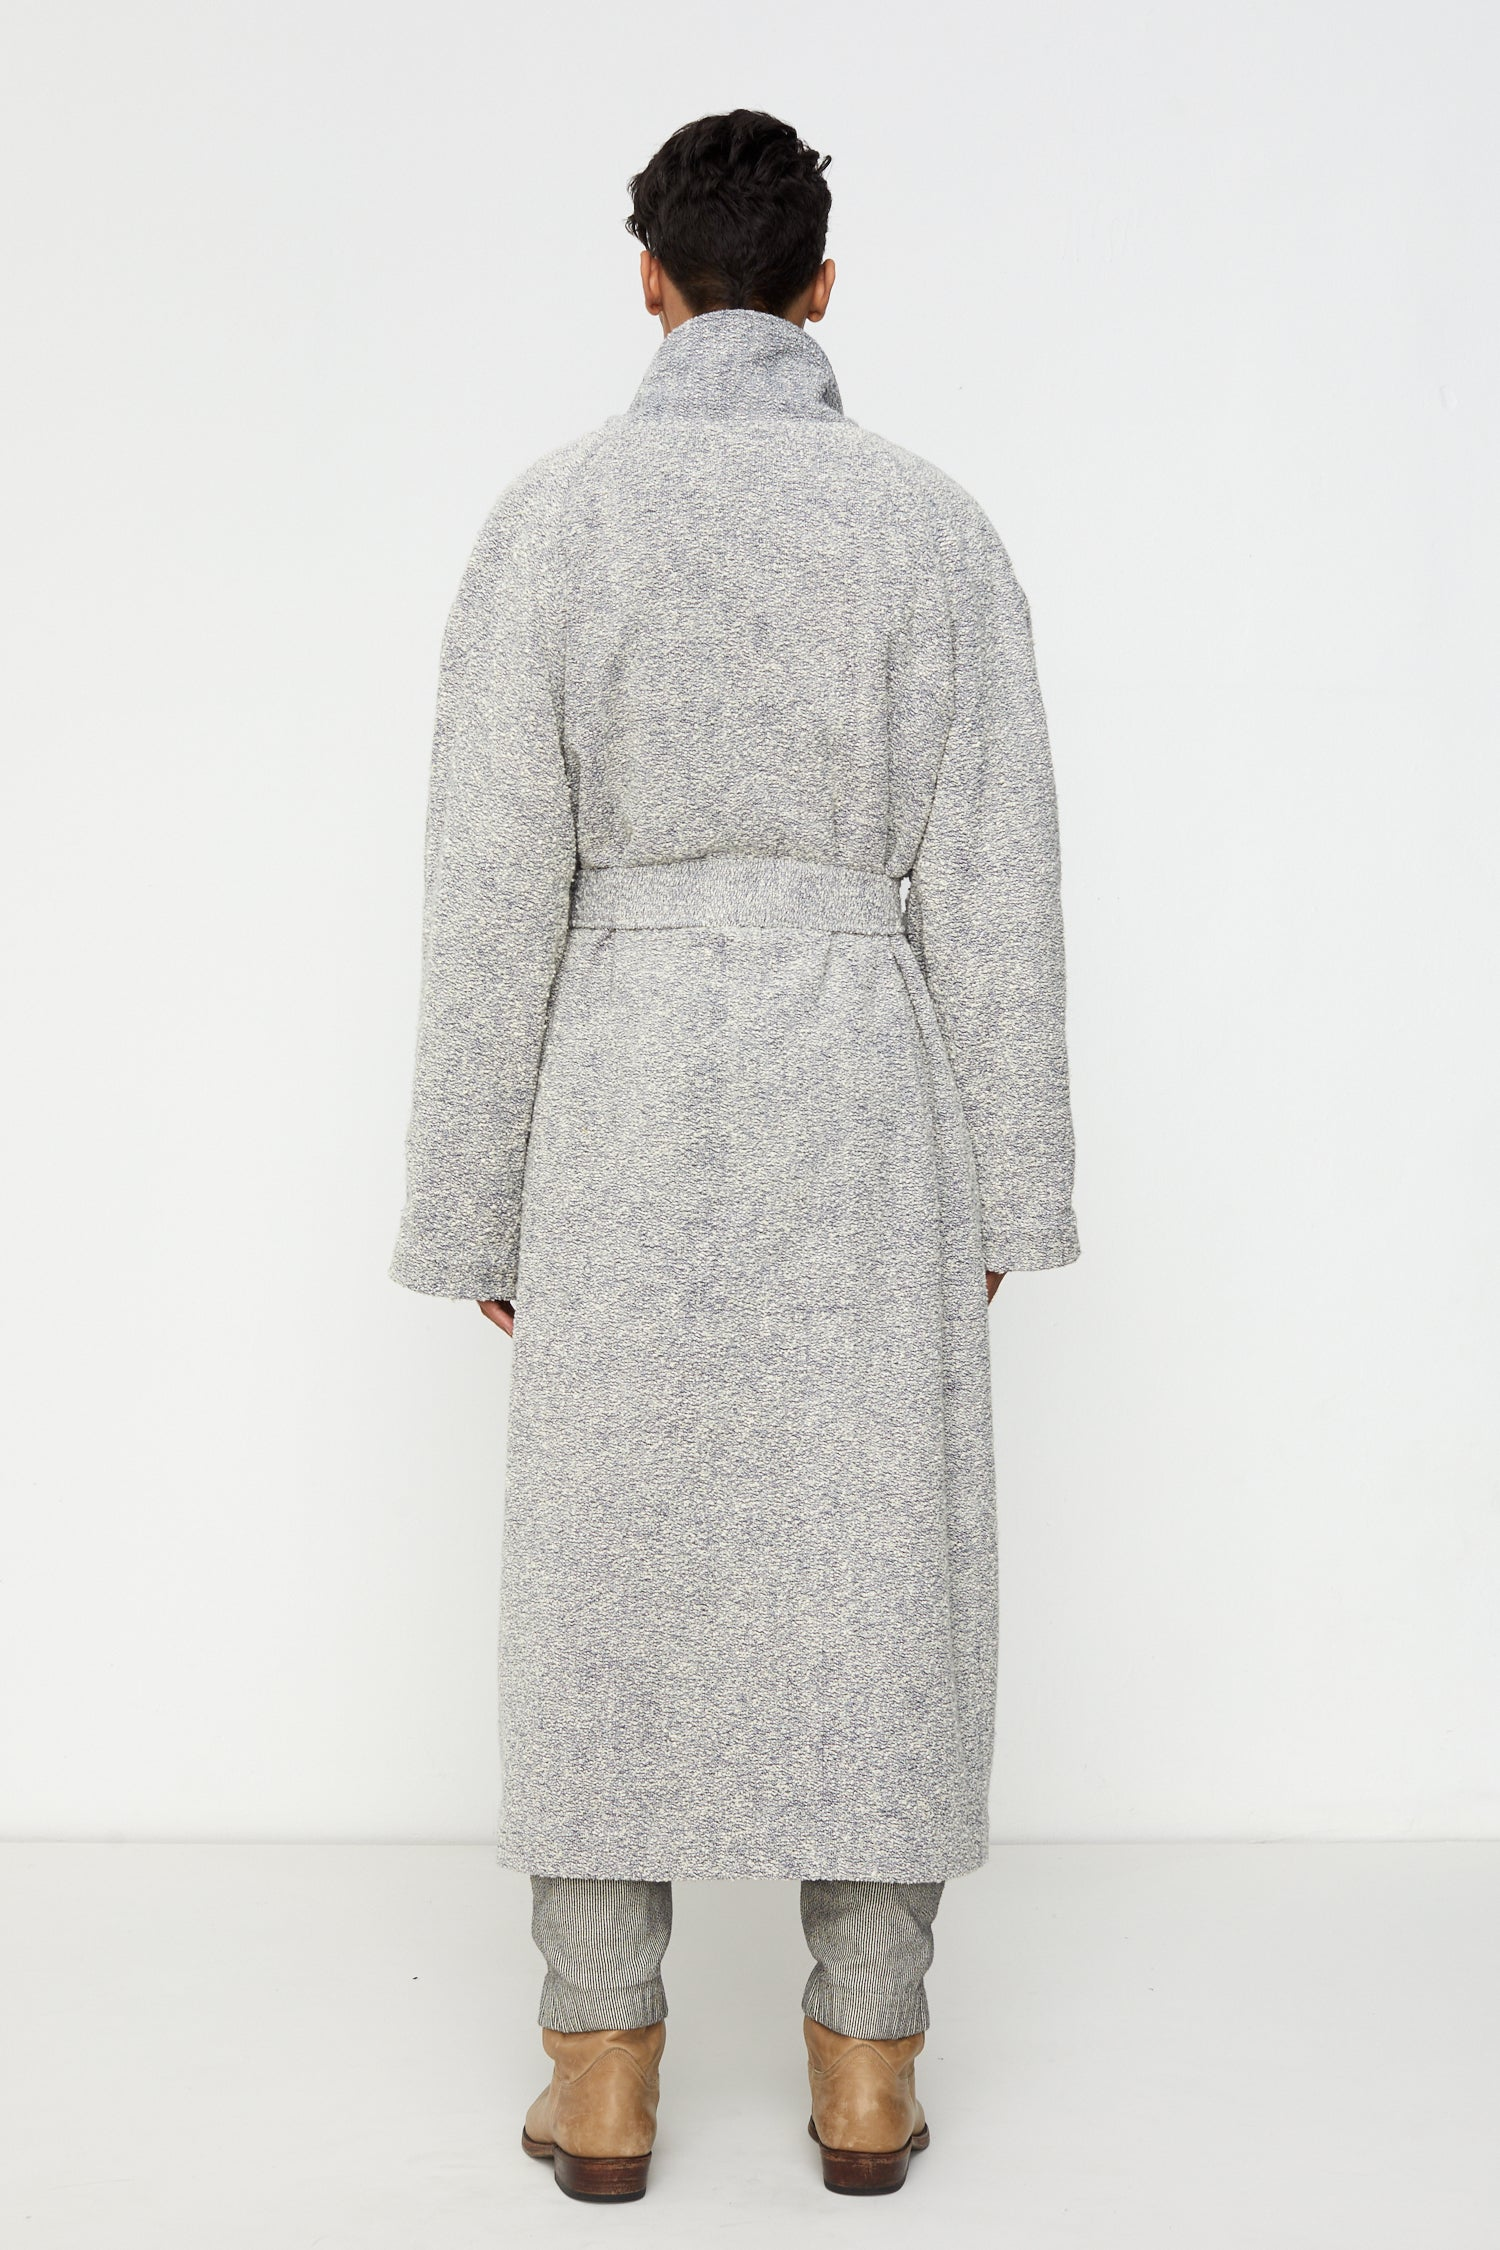 Blanket Coat in Ecru Boucle